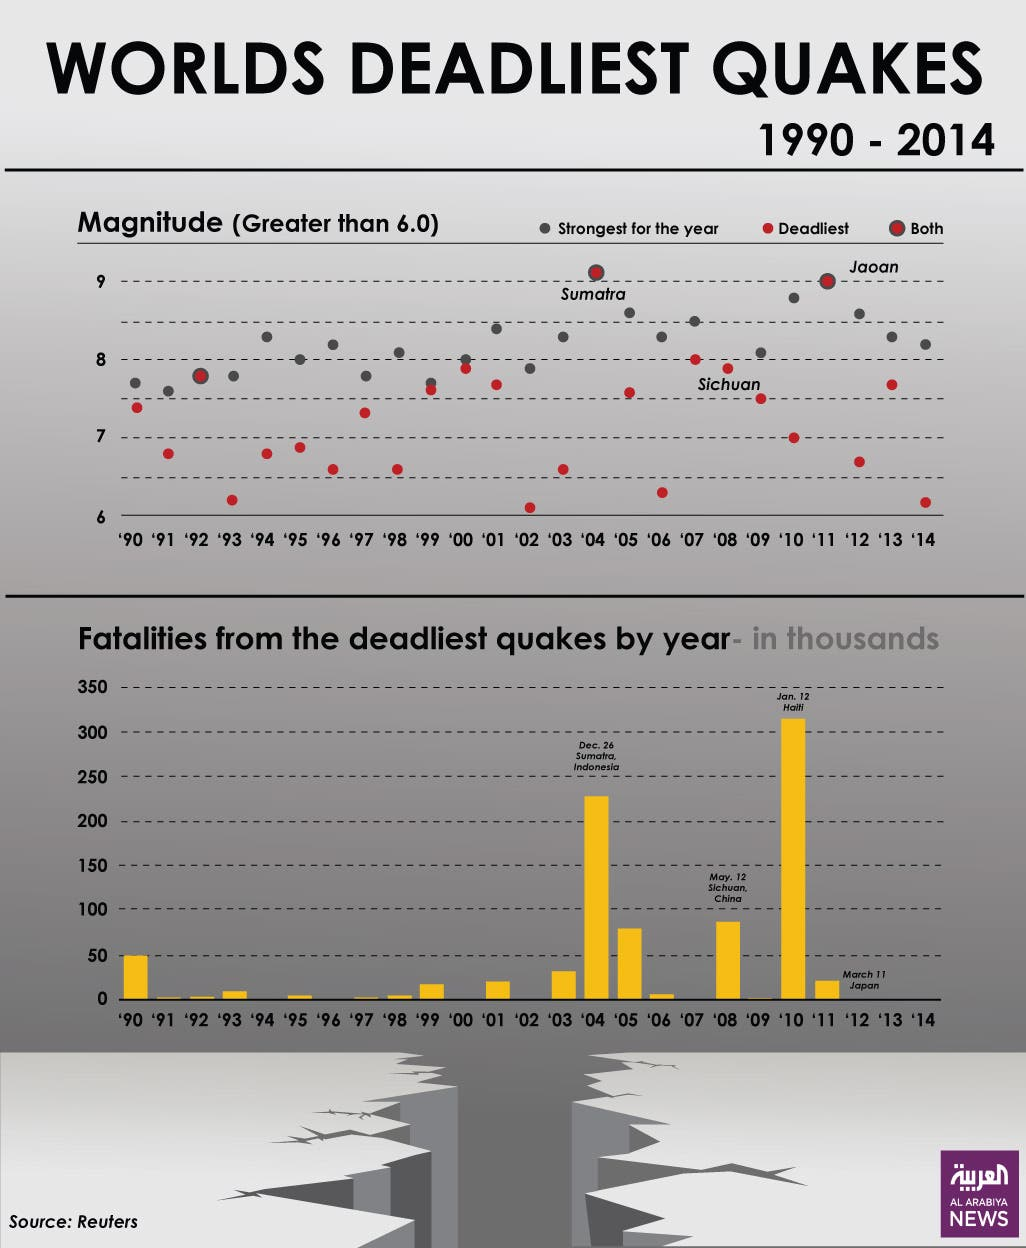 Infographic: Worlds deadliest quakes (1990-2014)